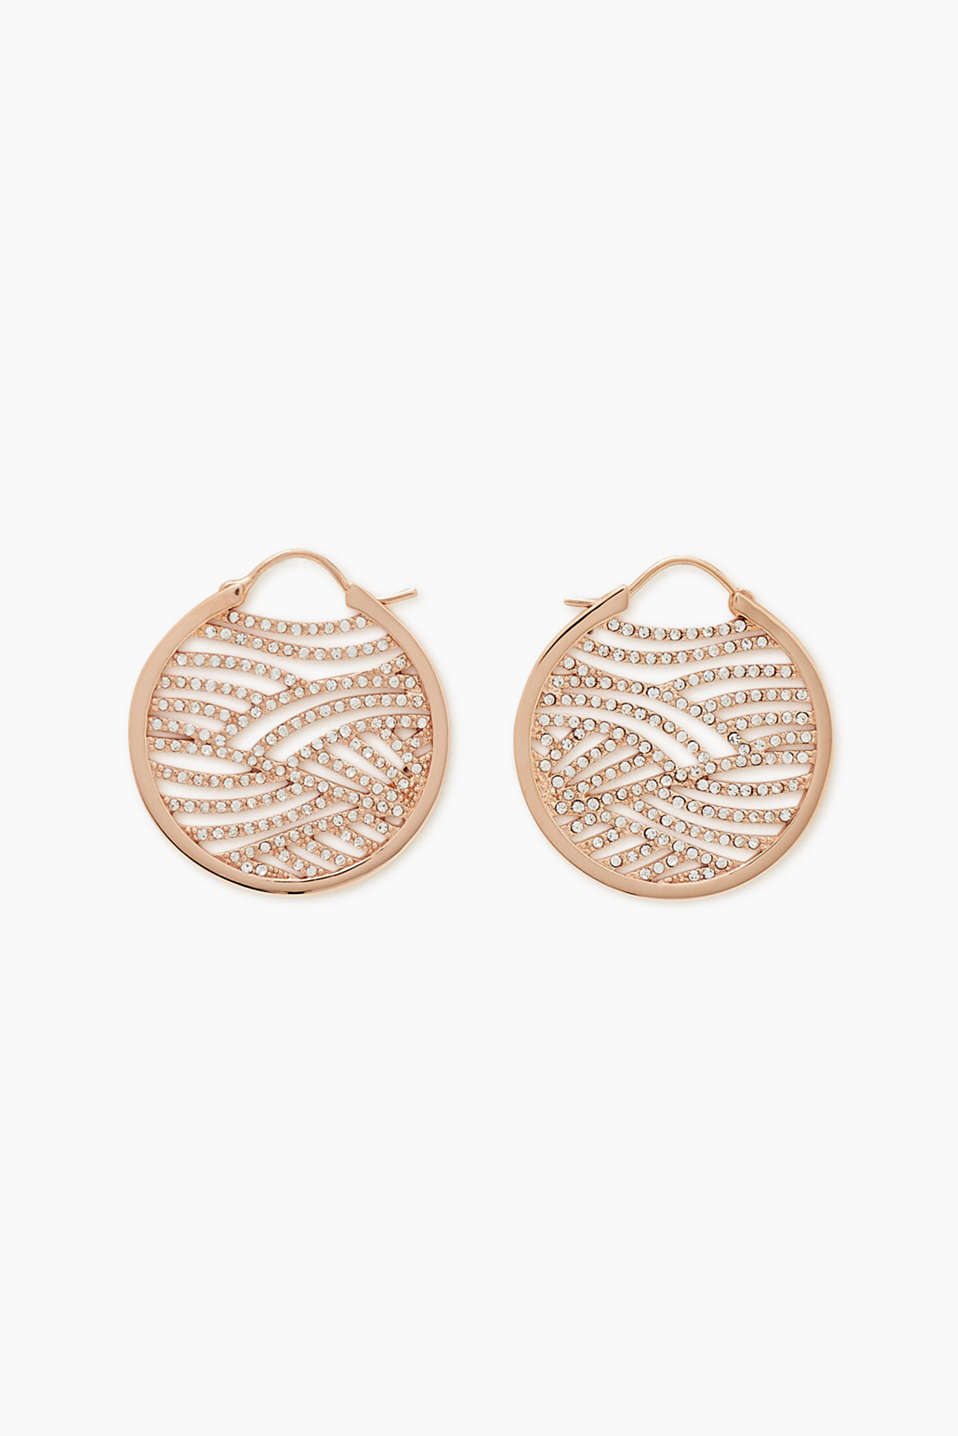 Esprit - Rose gold hoop earrings with zirconia